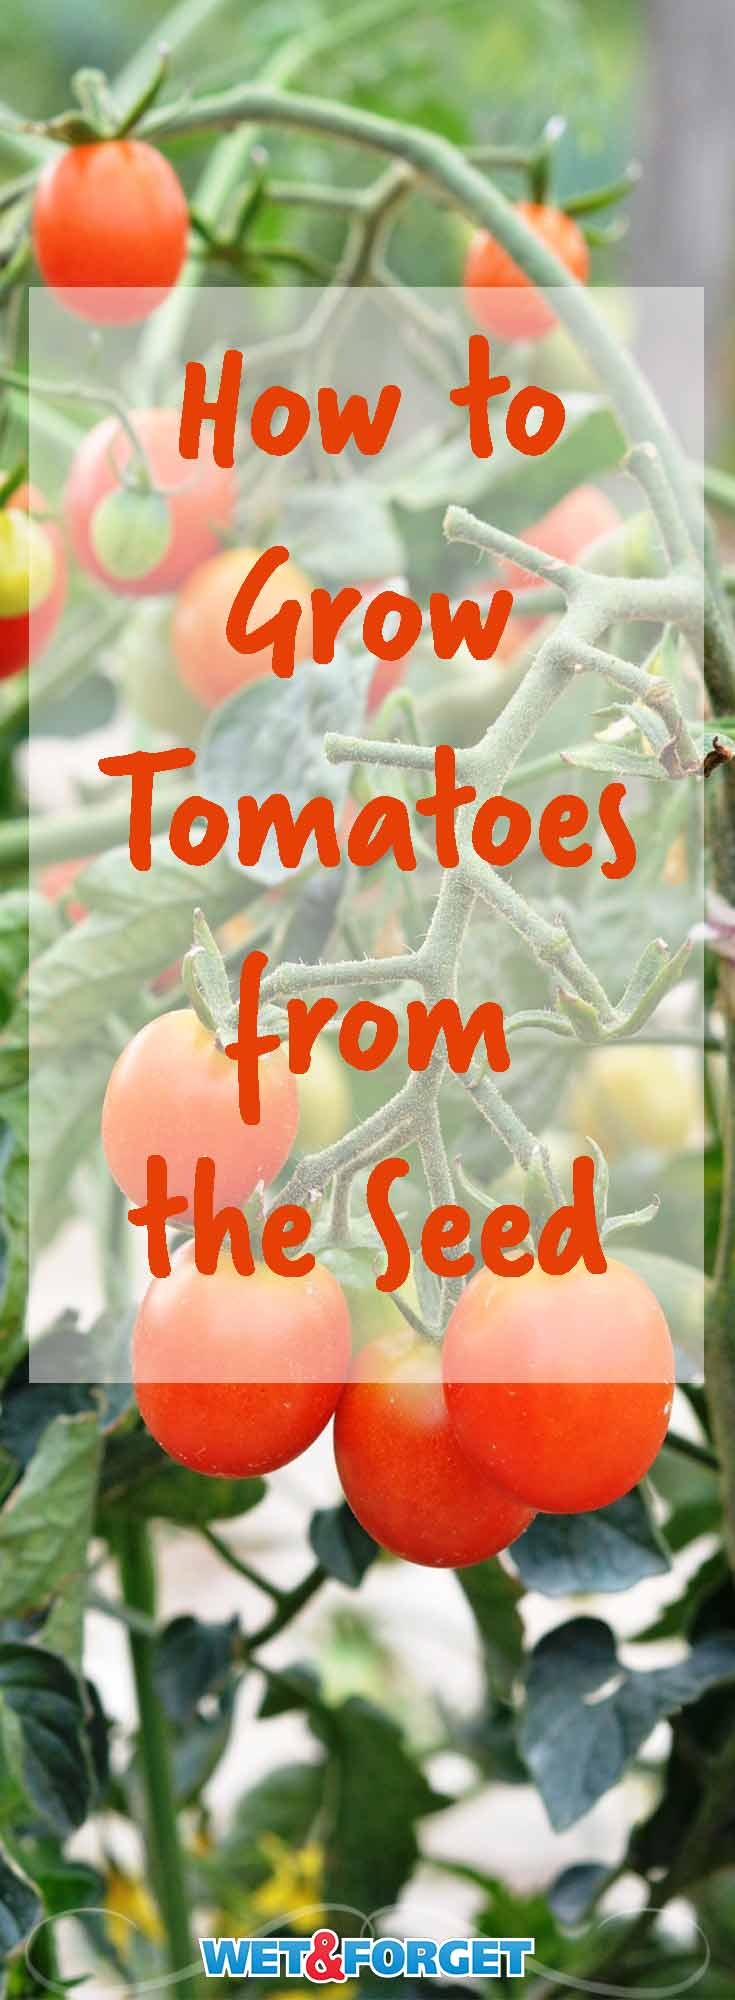 Set yourself up for a fruitful garden by growing tomatoes from the seed! Learn all the tips and tricks to save money and grow healthy tomatoes from the seed.